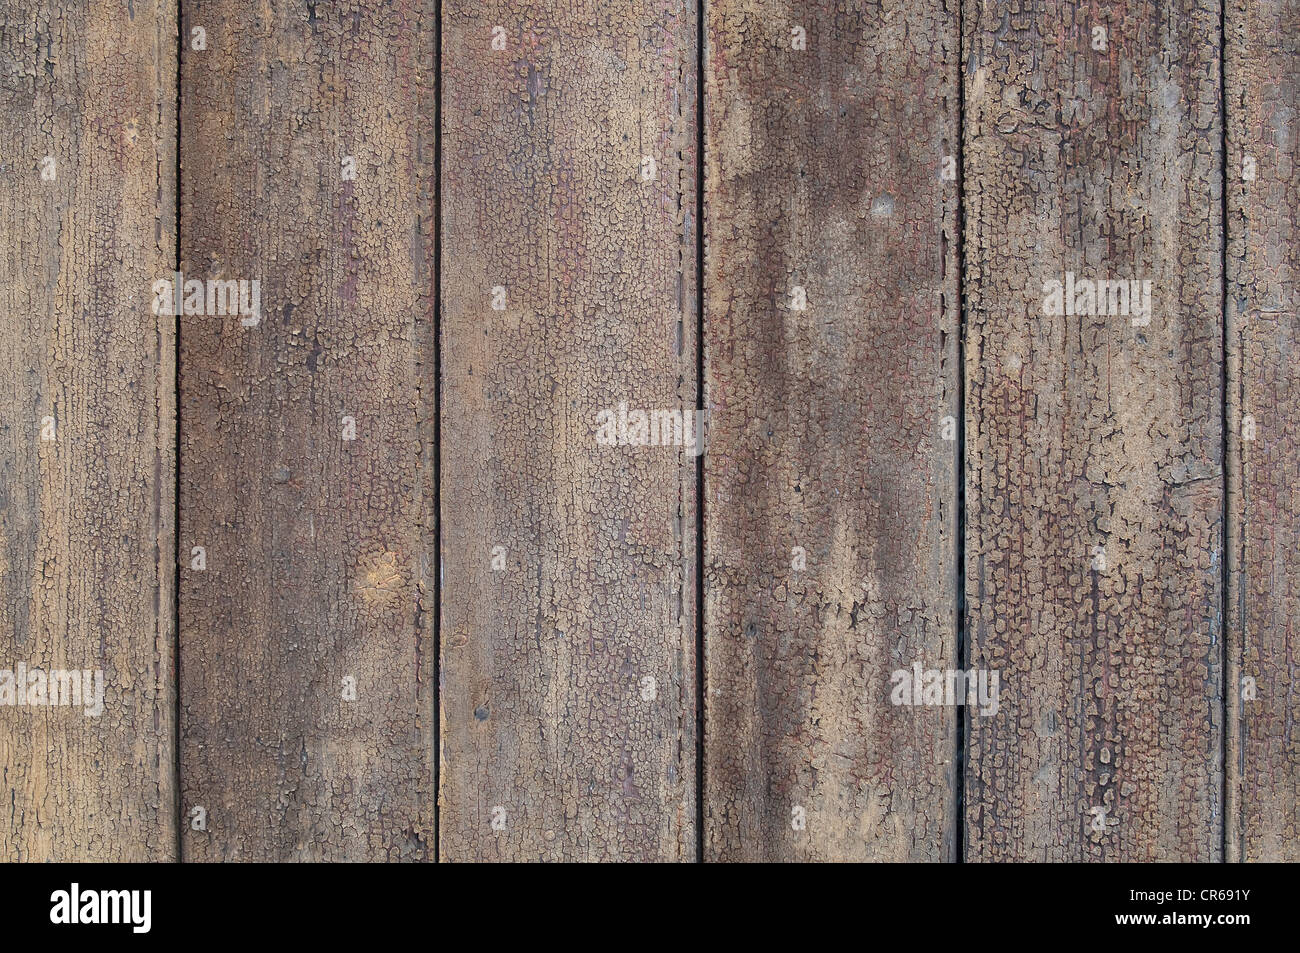 Weathered wooden wall, background - Stock Image